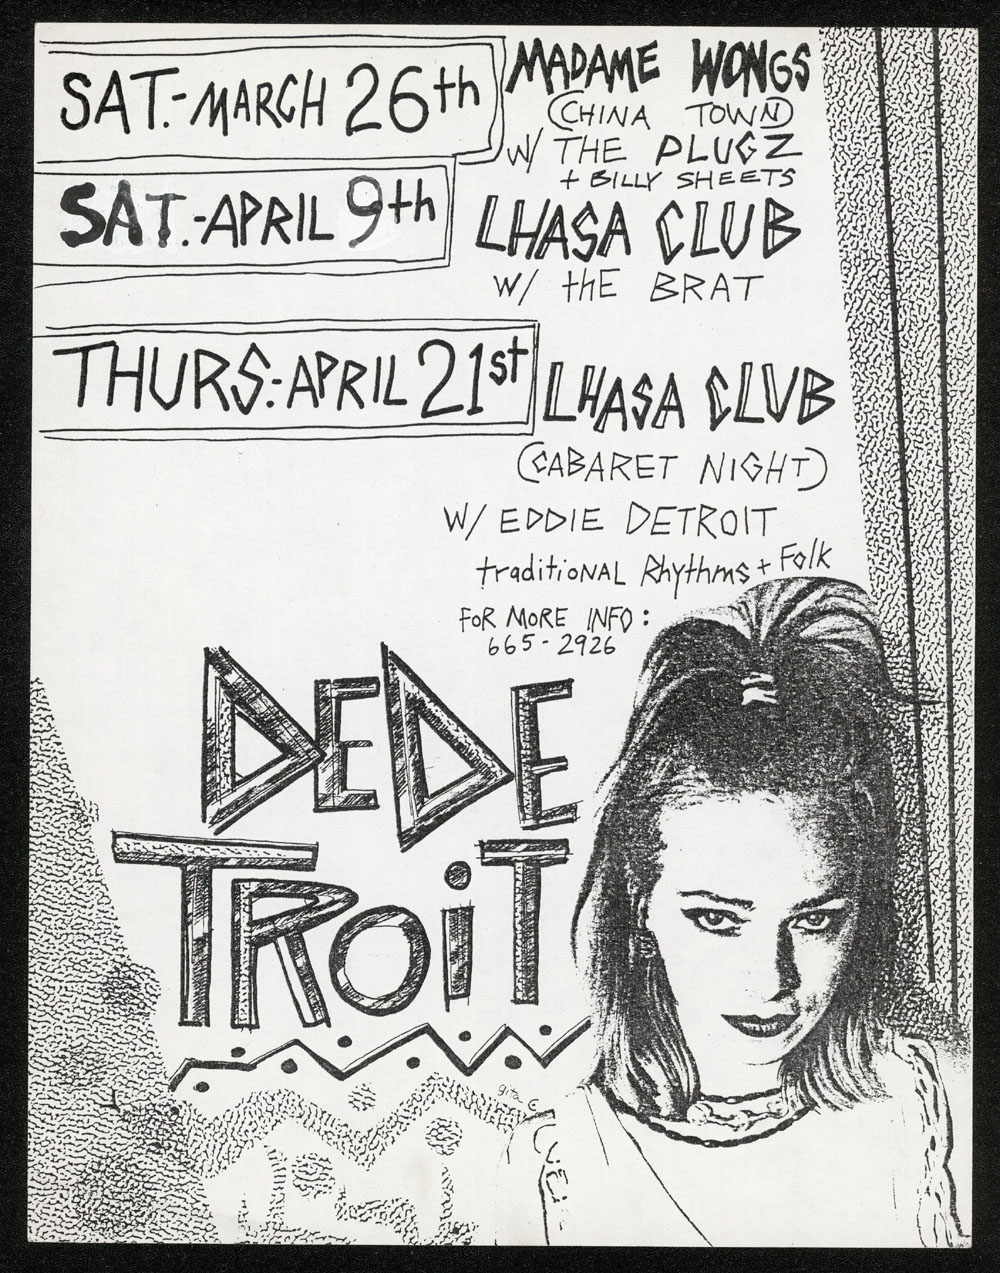 DE DE TROIT w/ Plugz at Madam Wong's + w/ The Brat at Lhasa Club